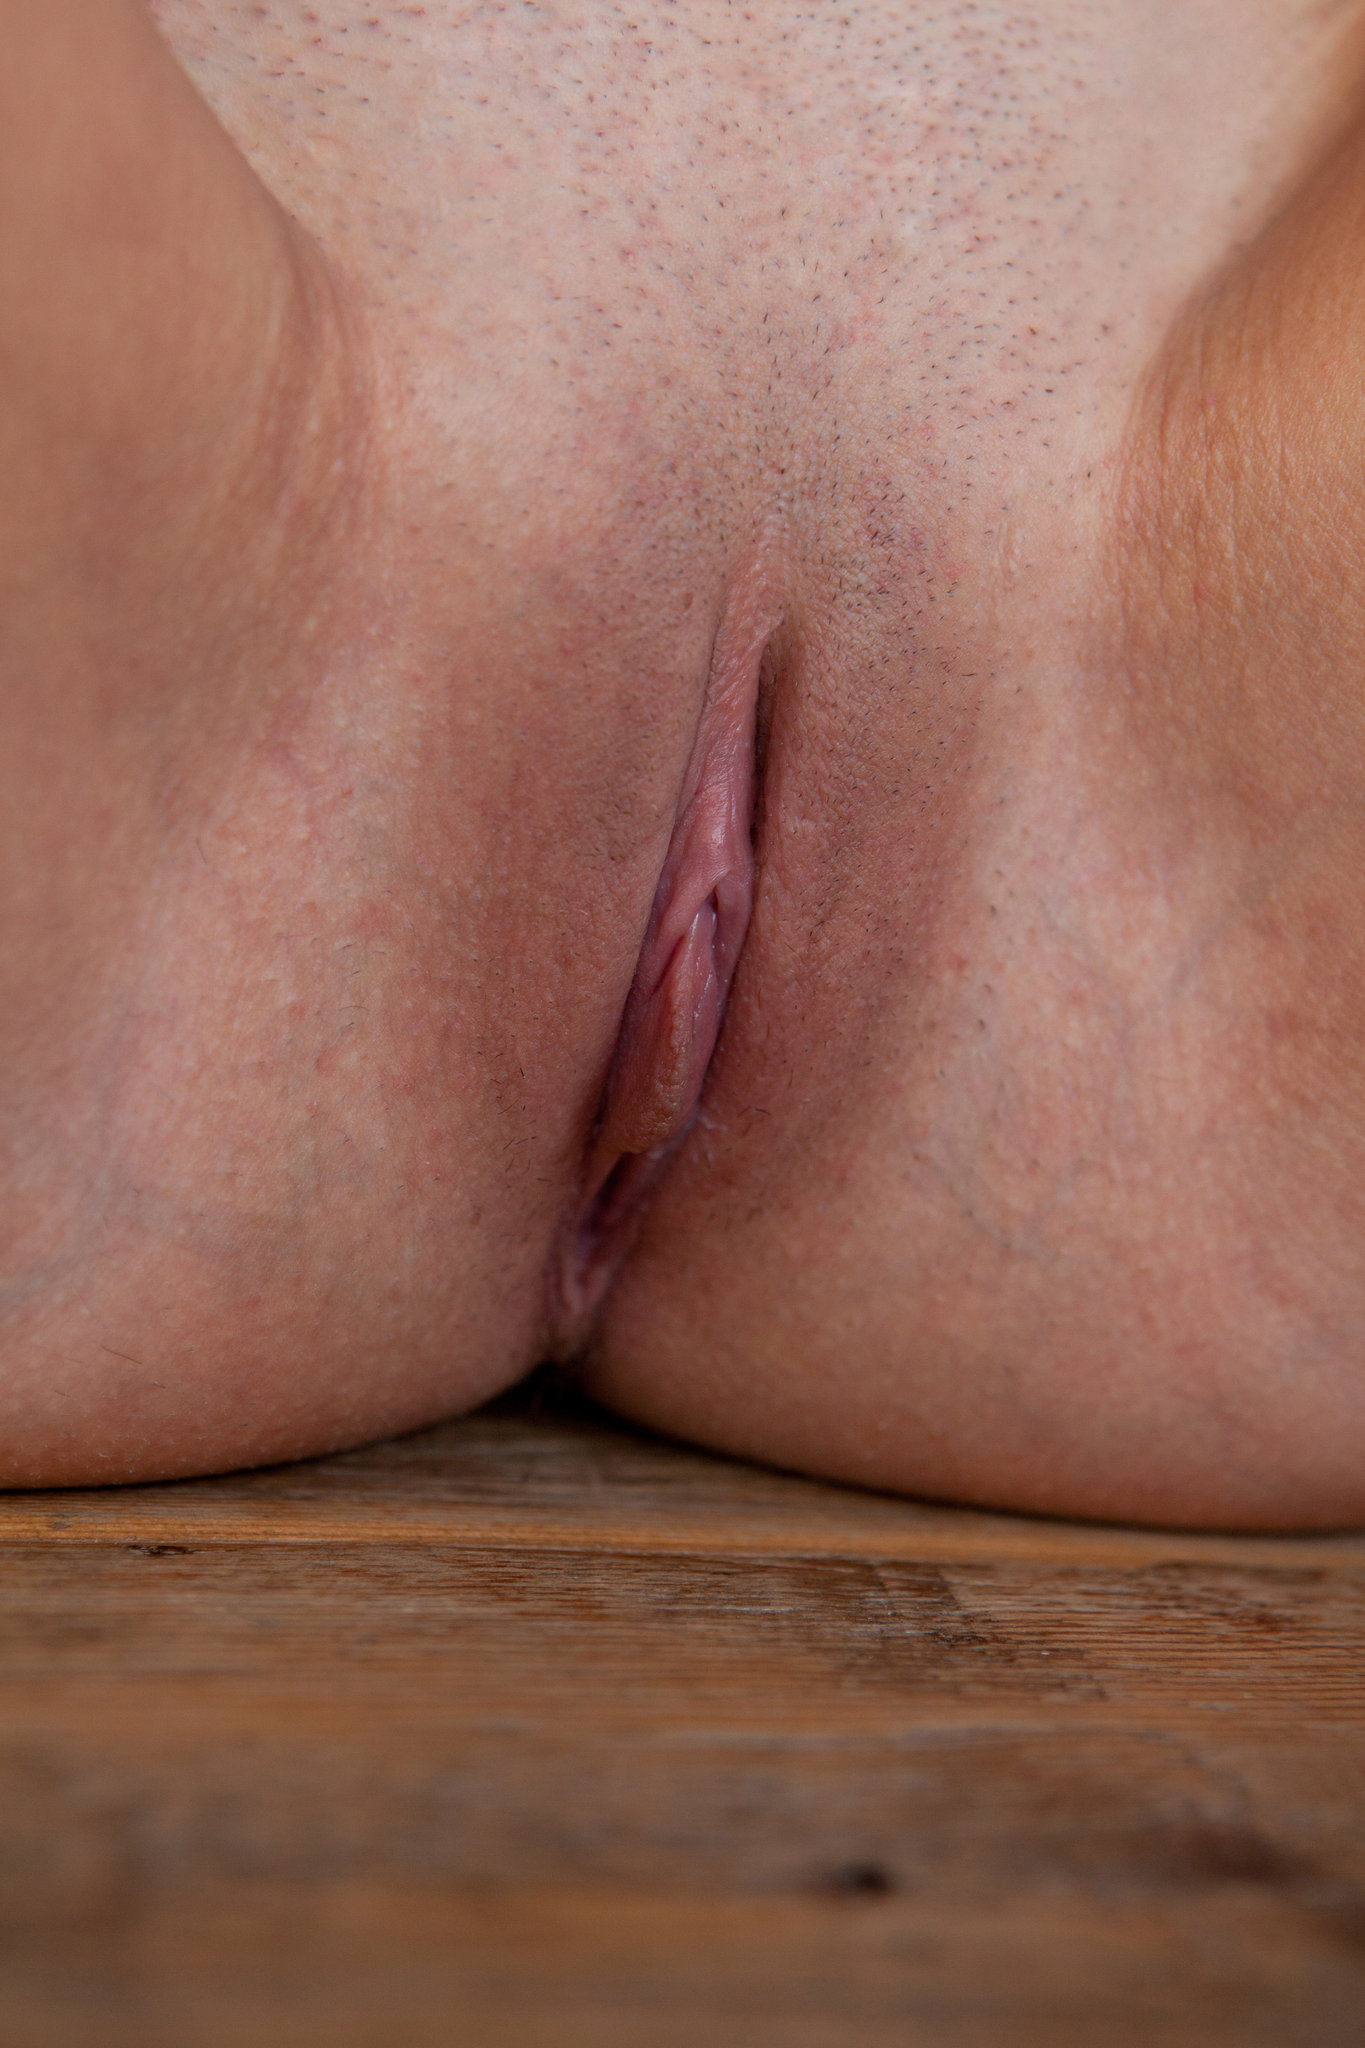 Vaginal closeups